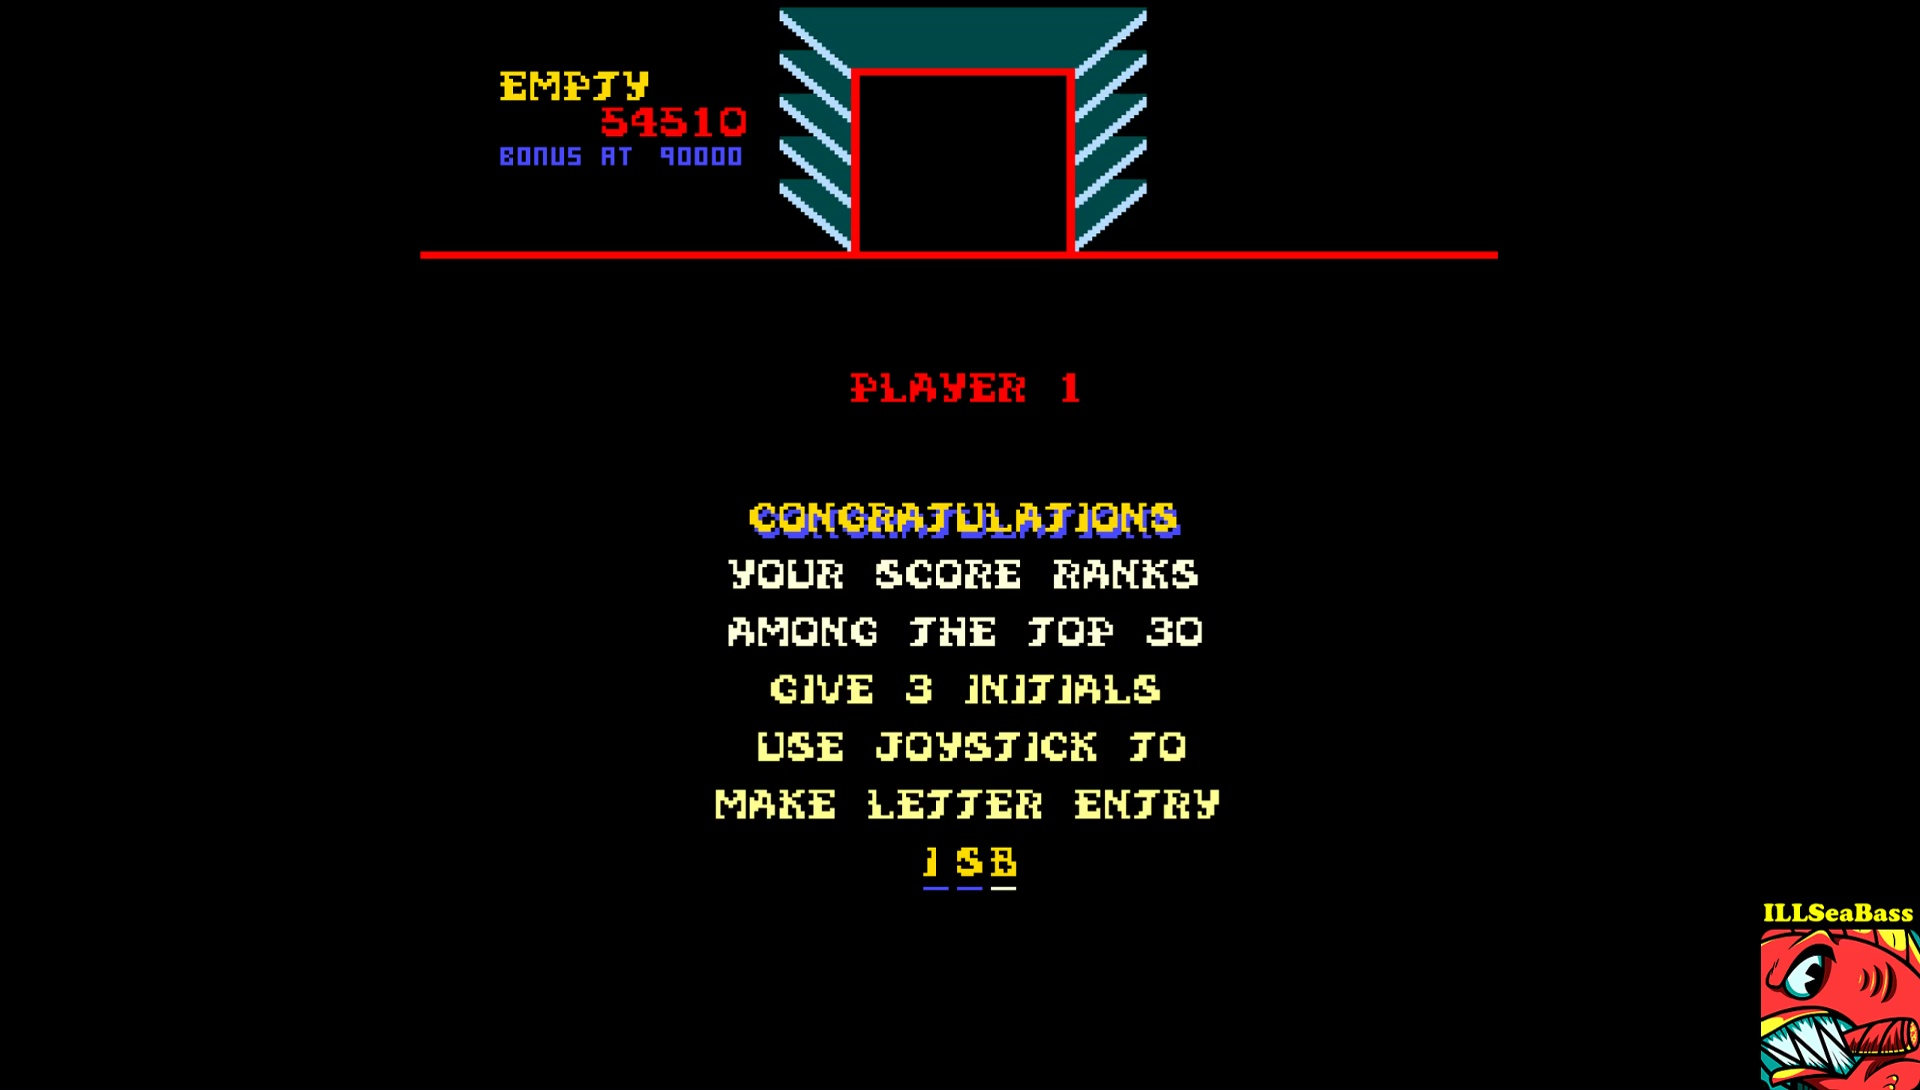 ILLSeaBass: Midway Arcade Treasures: Extended Play: Sinistar (PSP Emulated) 54,510 points on 2017-05-22 13:01:25